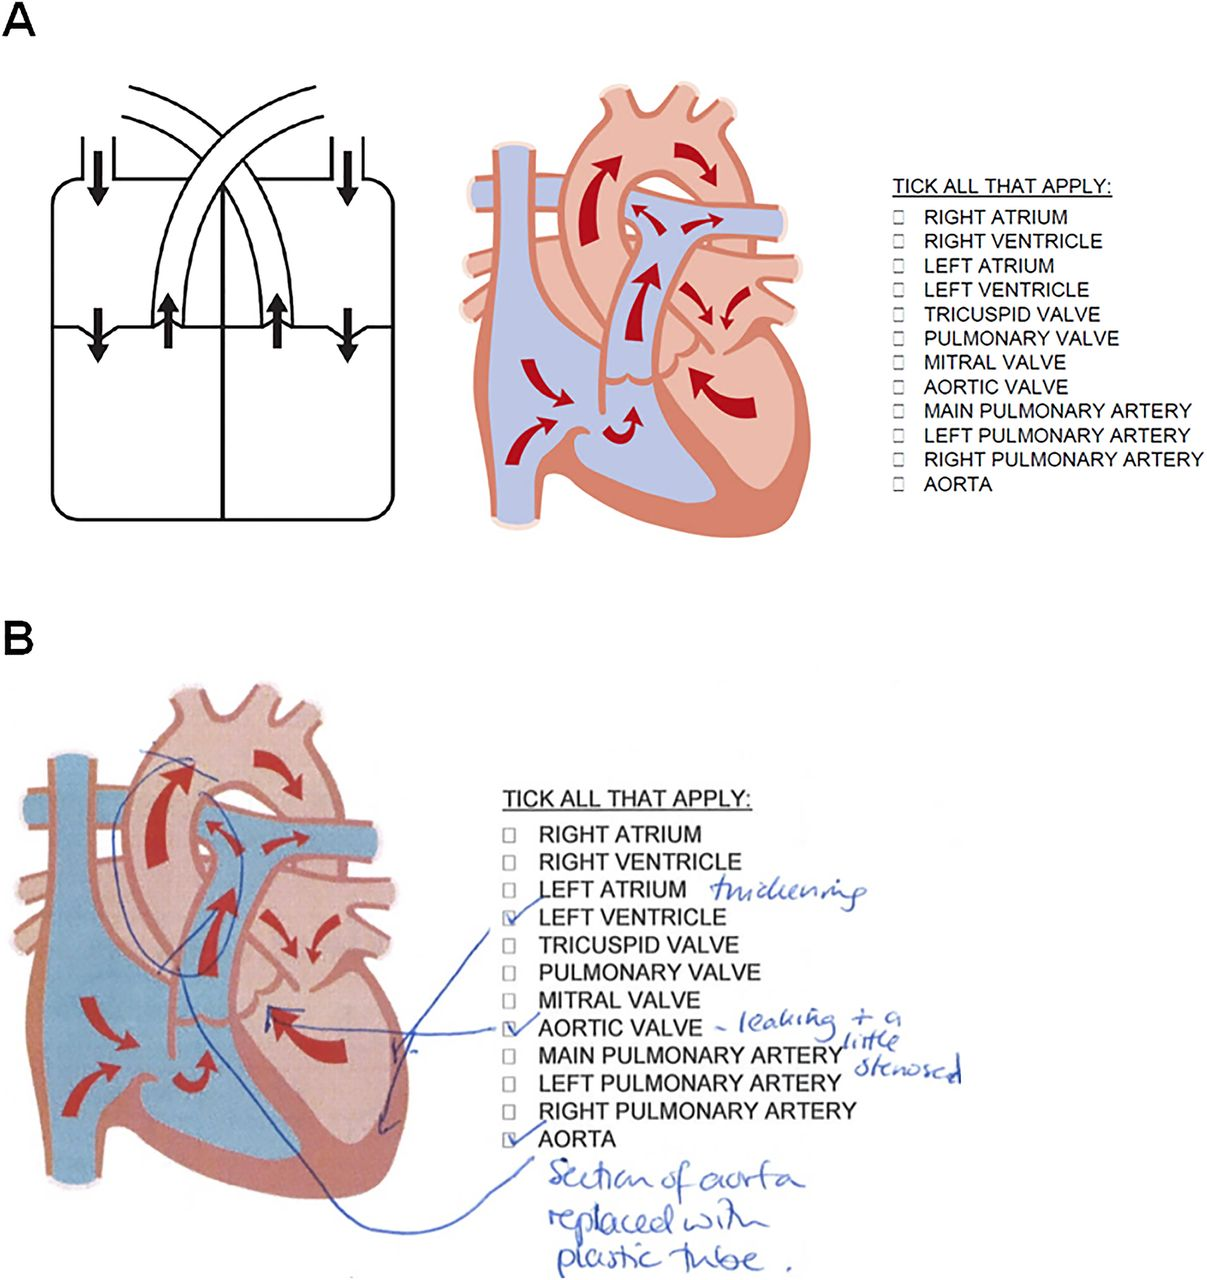 3D-manufactured patient-specific models of congenital heart defects ...